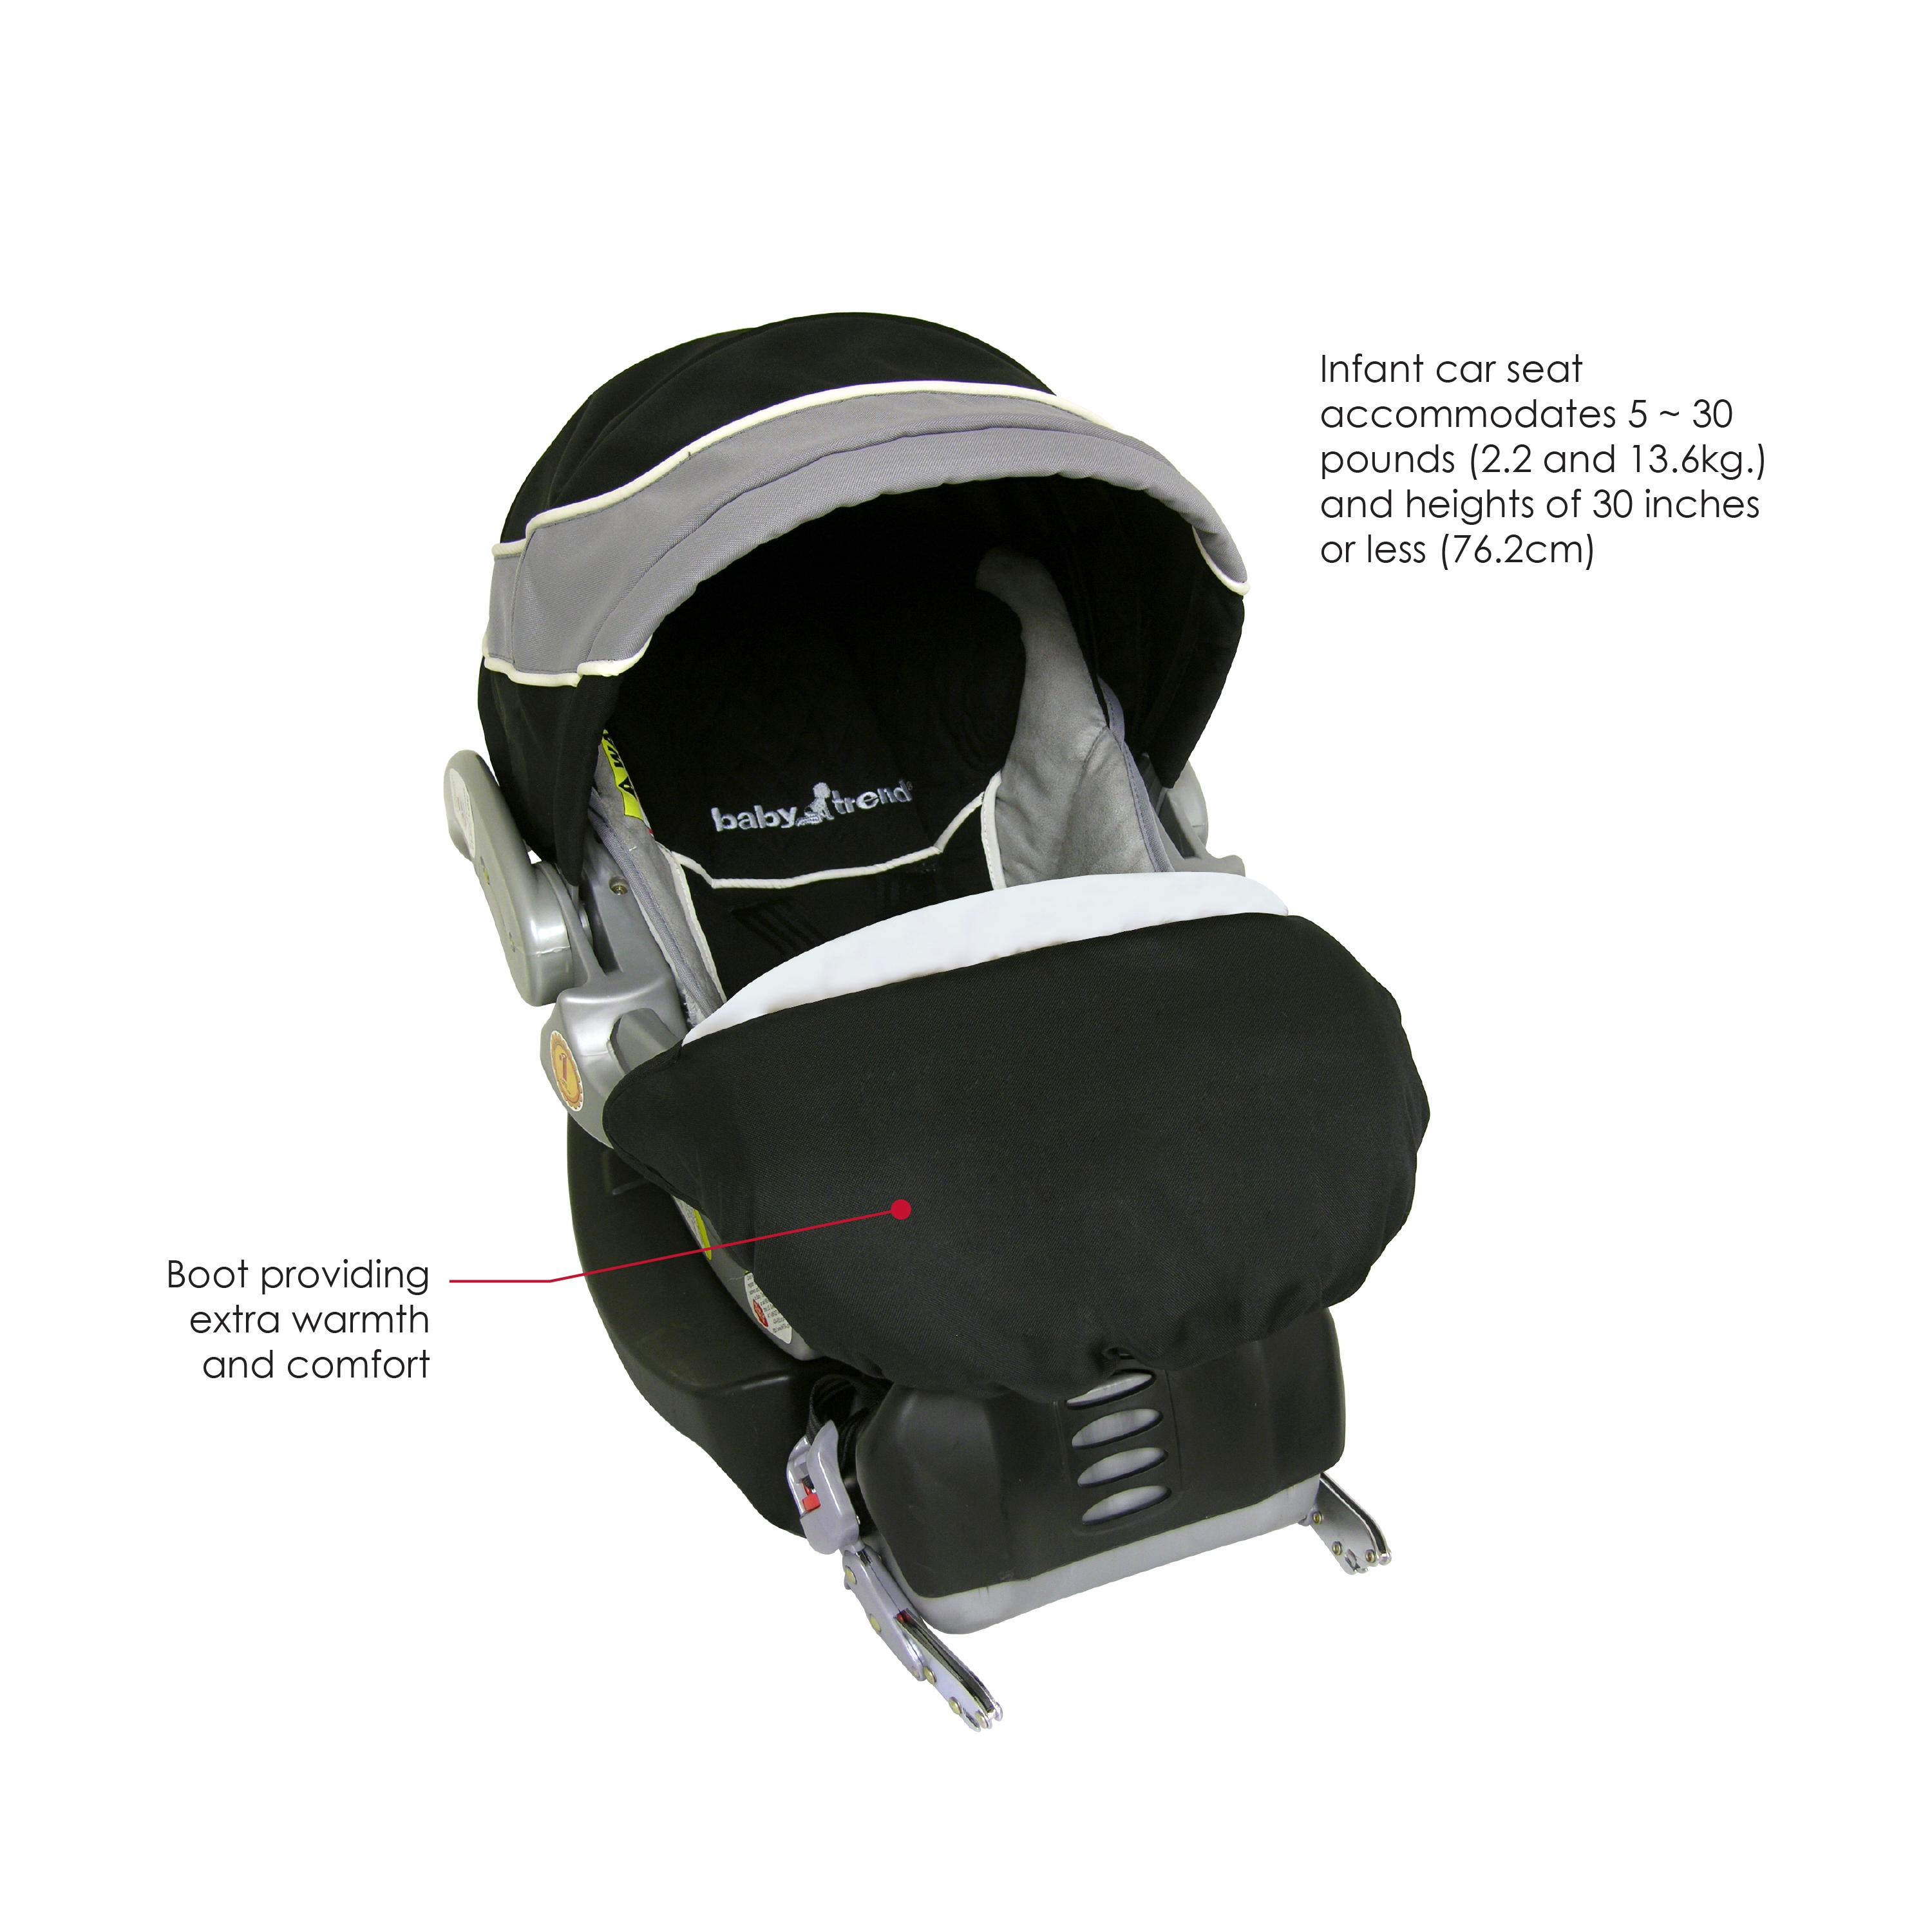 How To Adjust Baby Trend Car Seat Base